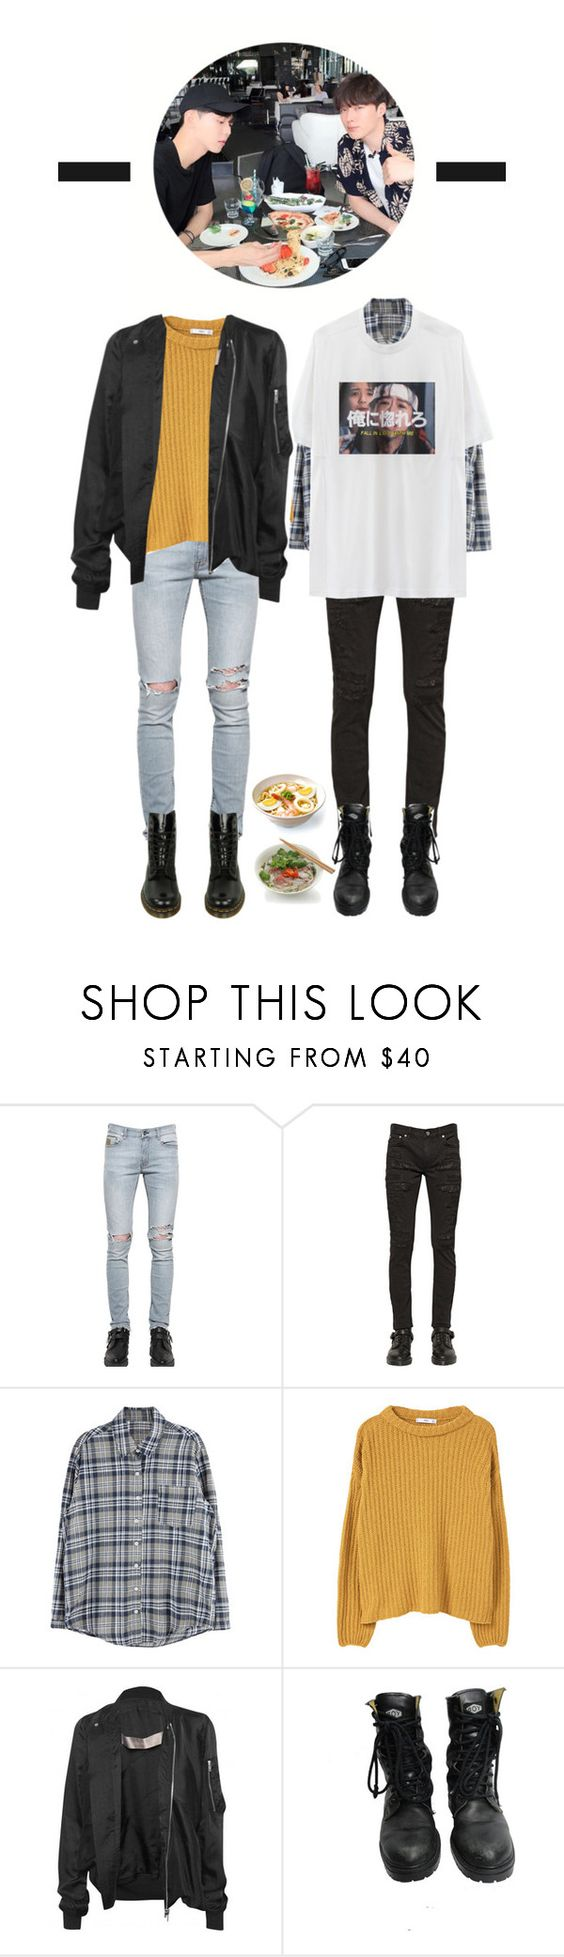 """""""{ Insik & AM } Going out to eat"""" by hi4-official ❤ liked on Polyvore featuring April 77, BLK DNM, MANGO, VFiles, Rick Owens, BOY London, Dr. Martens, men's fashion and menswear"""